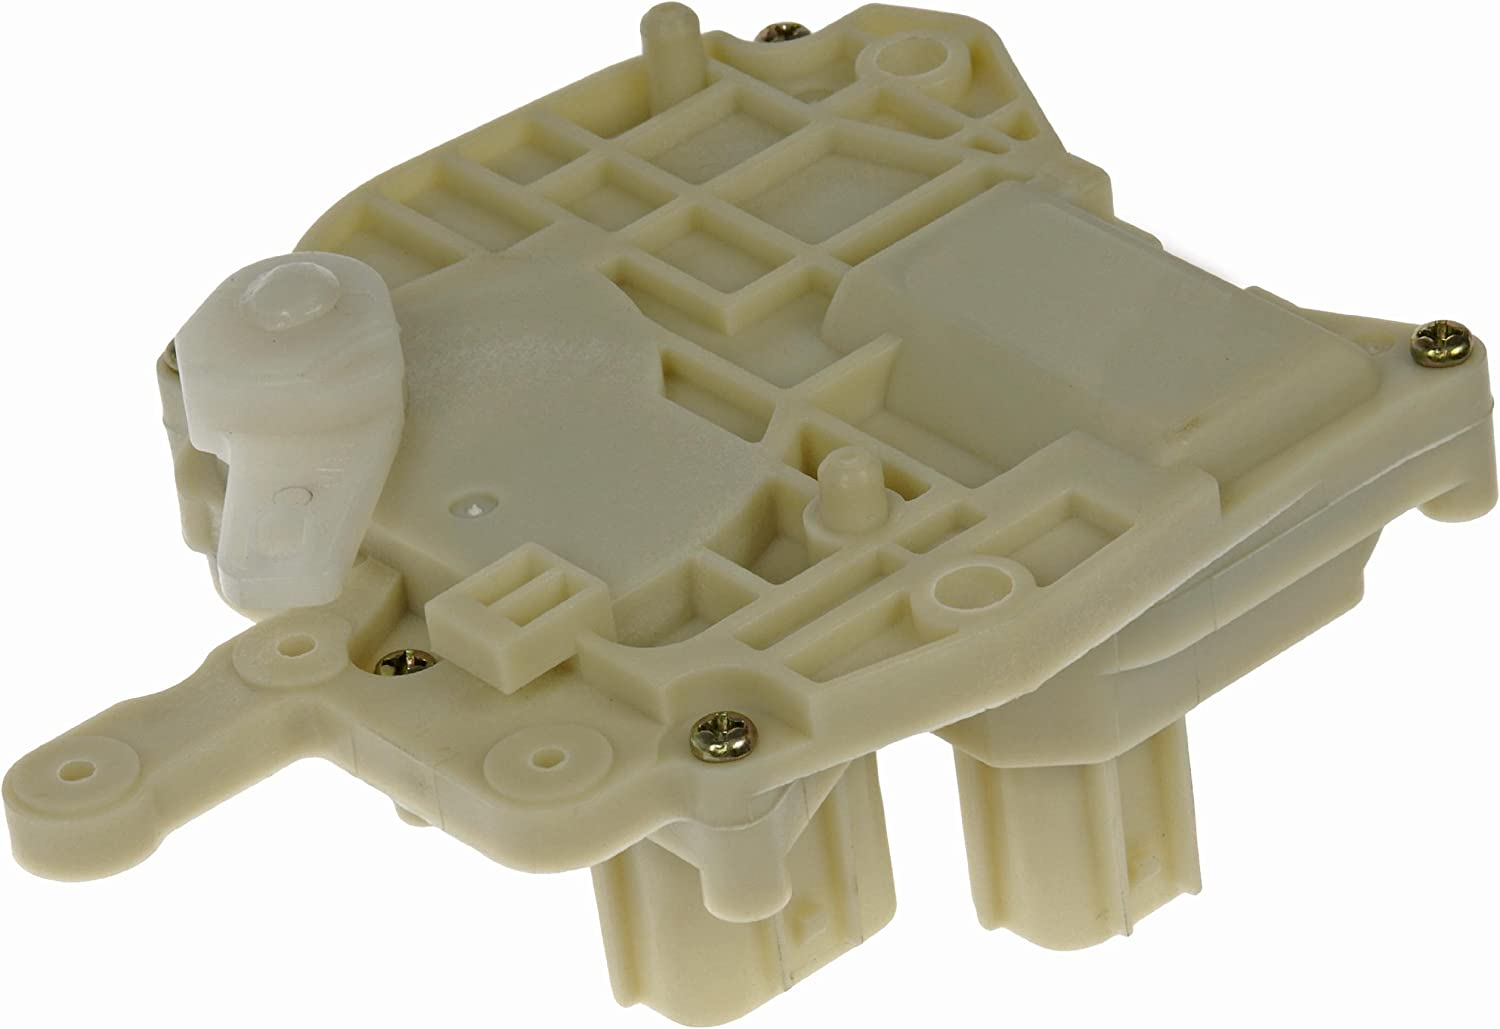 AUTOMUTO 746-367 AC89779 8D1302 DLA135 Driver Side Door Lock Actuator Fits for 2004-2008 Acura 2003-2014 Honda